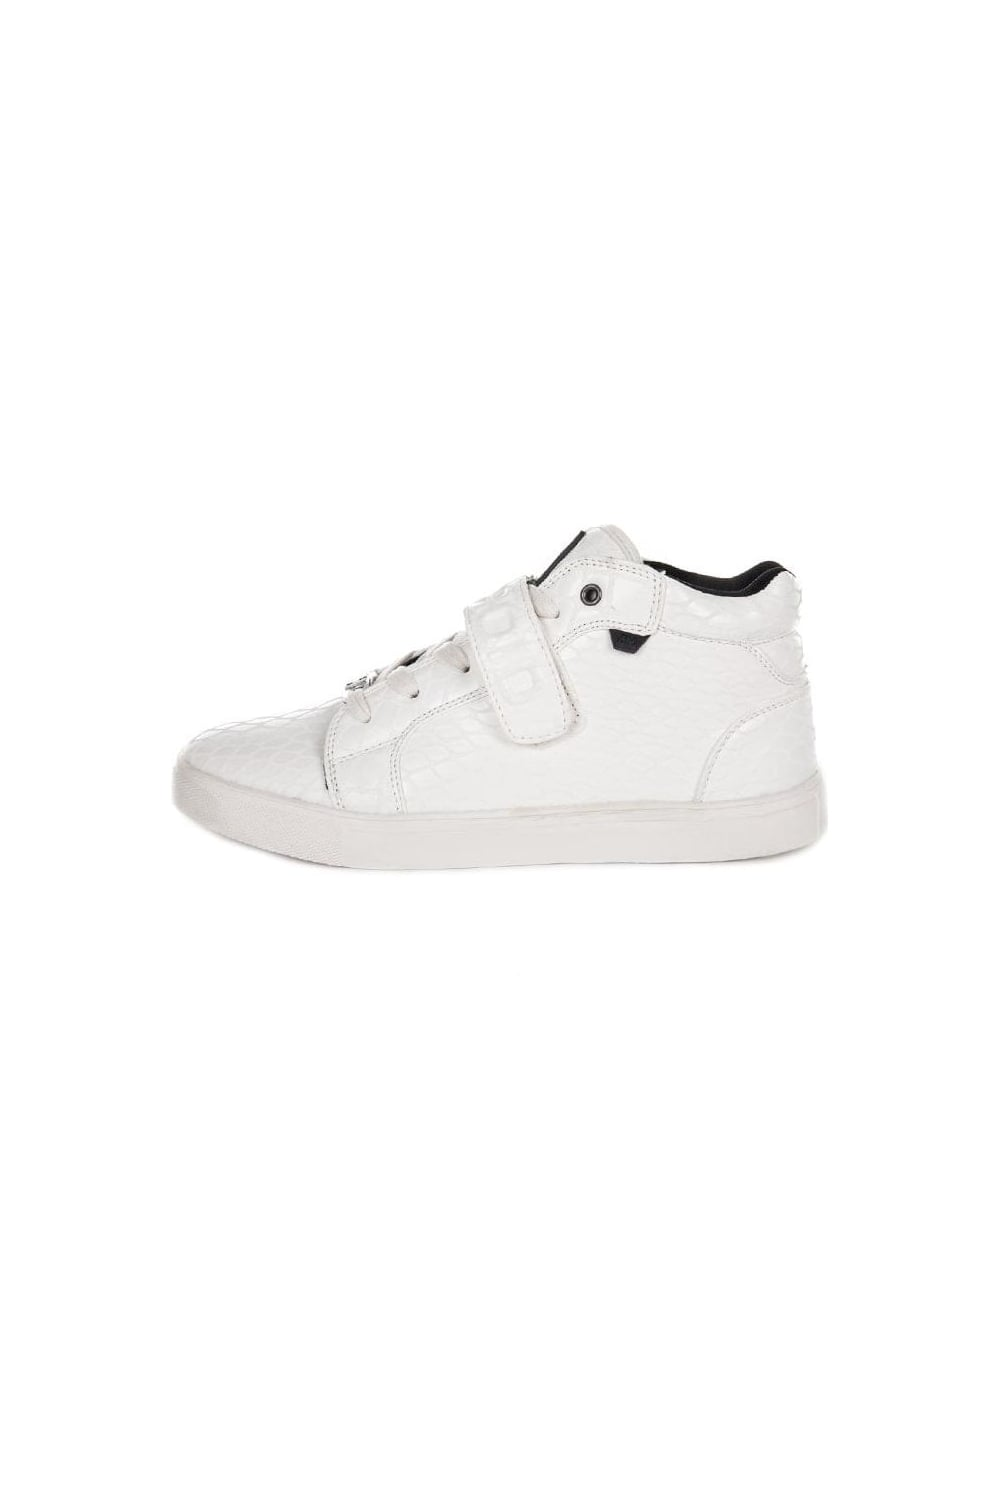 65bbbf4f5288 AH By Android Homme Propulsion Mid Trainers White